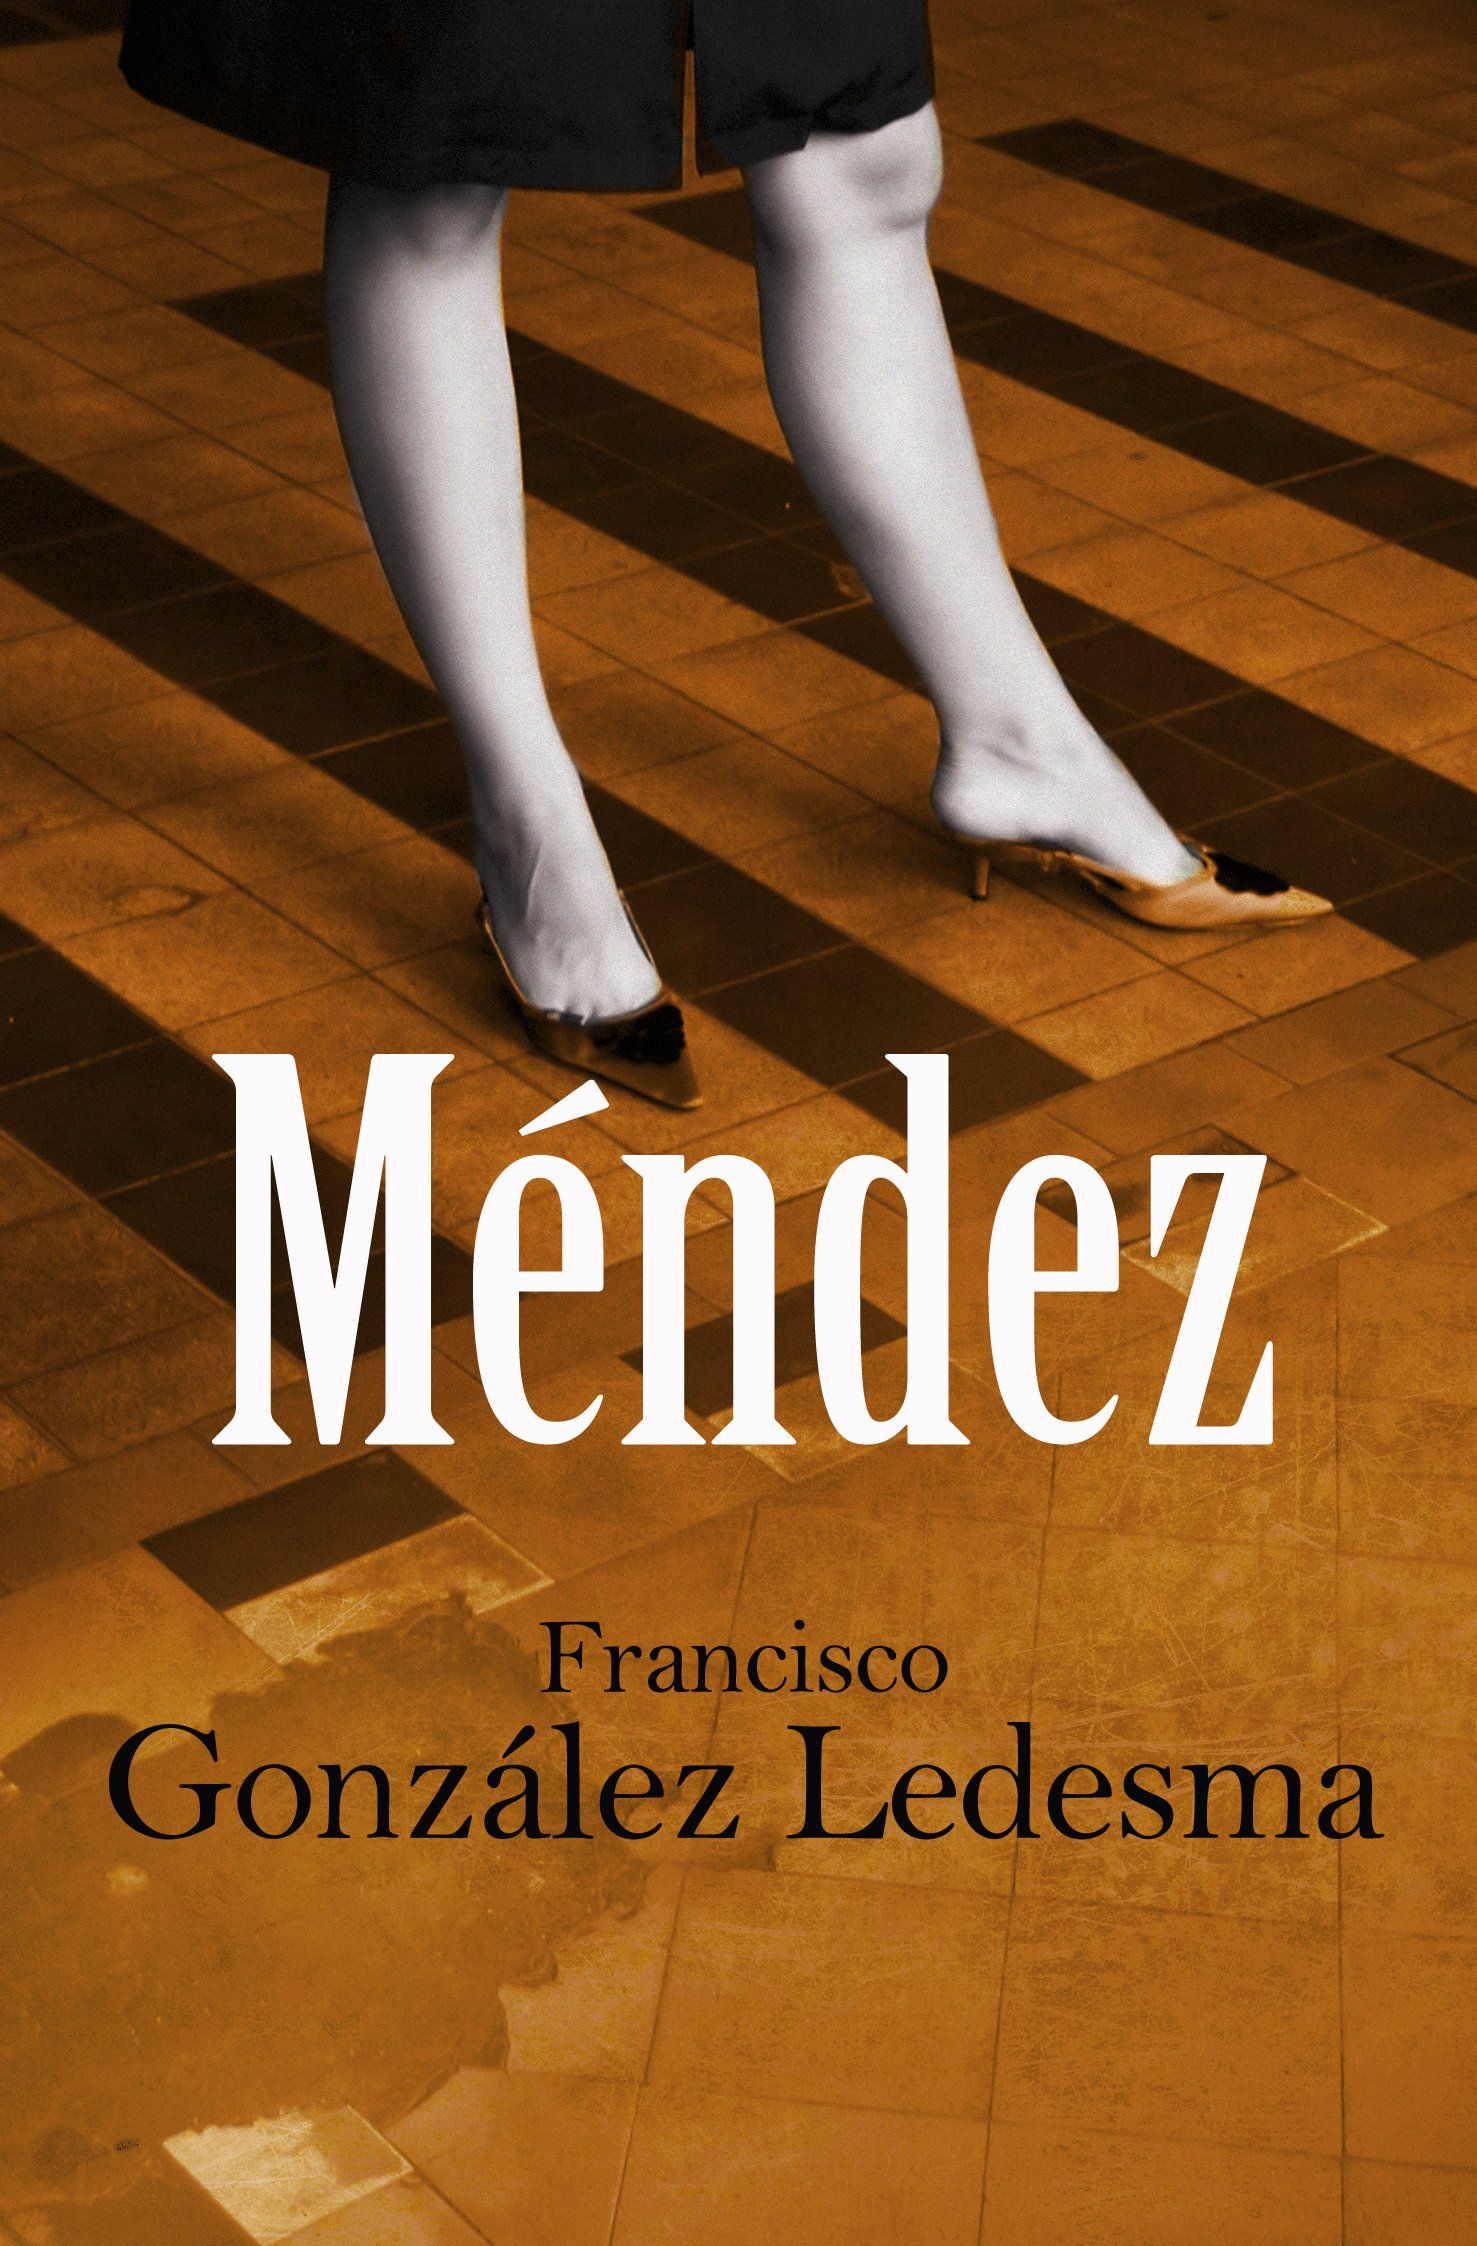 Méndez (Narrativa) Tapa blanda – 9 oct 2009 Francisco González Ledesma Books4pocket 8492516933 Short Stories (Single Author)